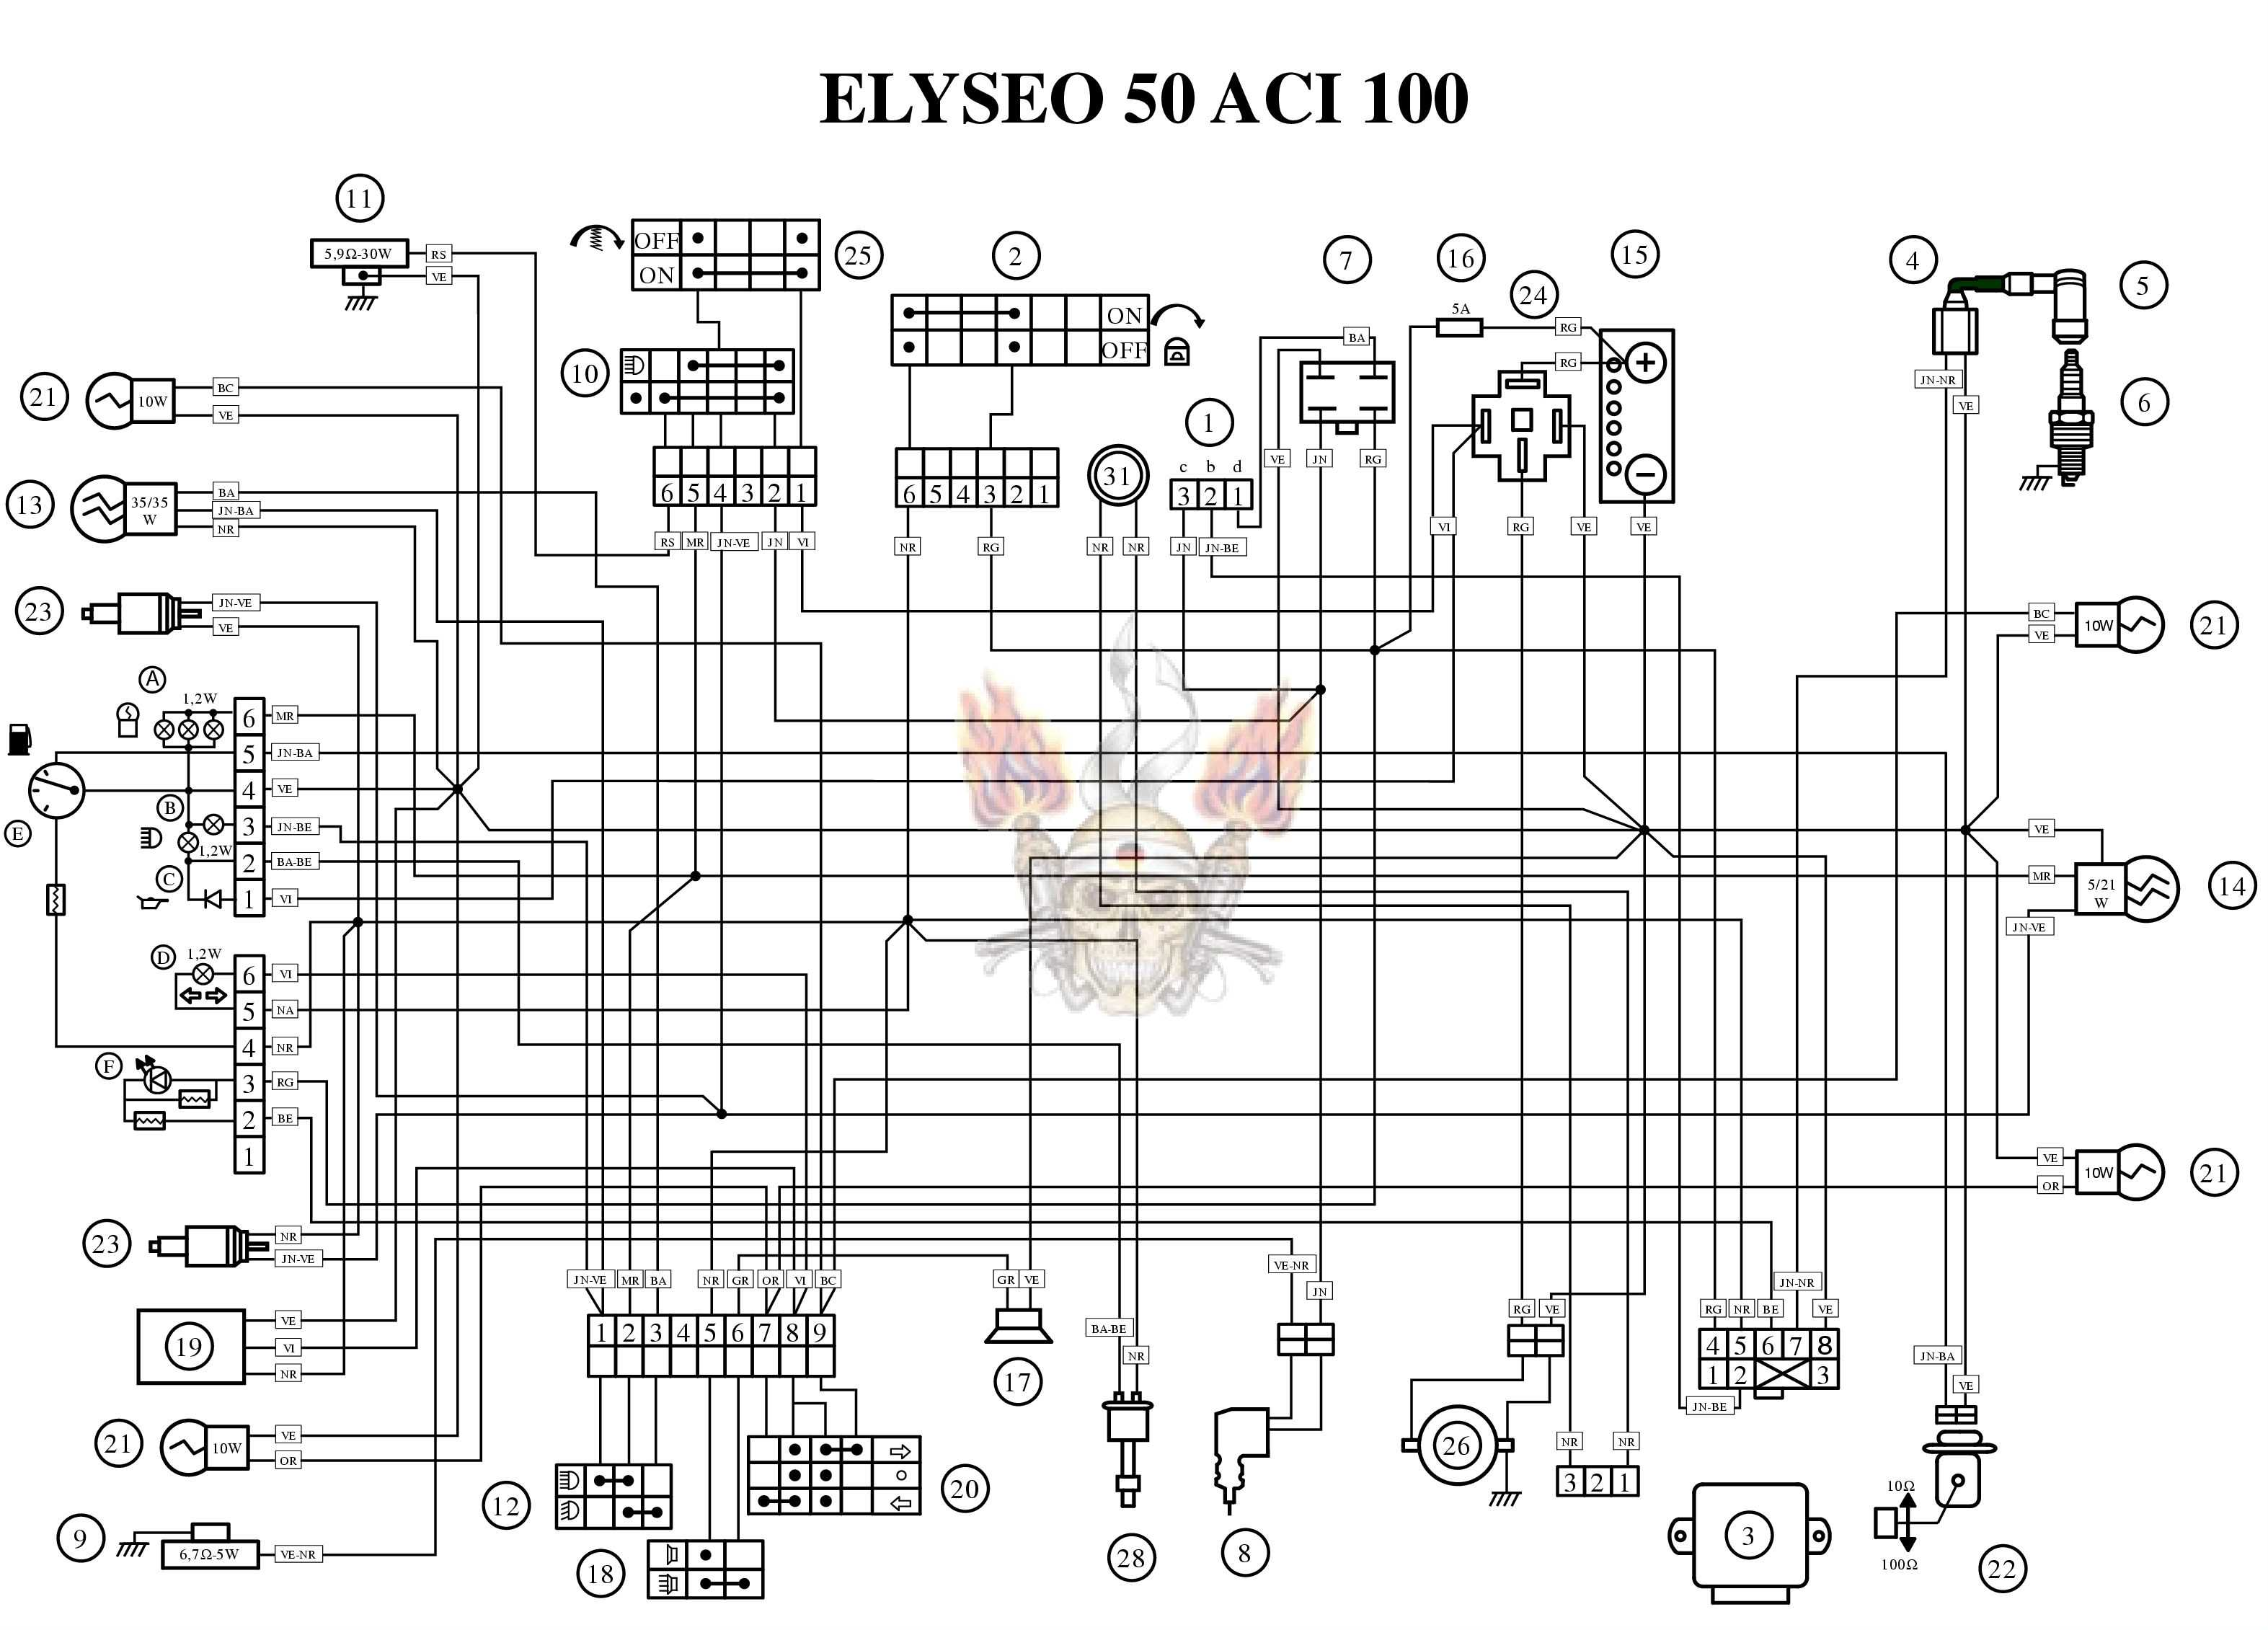 Tandem Axle Diagram further 2005 International 8600 Radio Wiring in addition Peugeot 206 Abs Wiring Diagram also Four Spring Tandem Suspension c 928 likewise Tandem Leaf Spring Suspension Diagram. on utility semi trailer wiring diagram